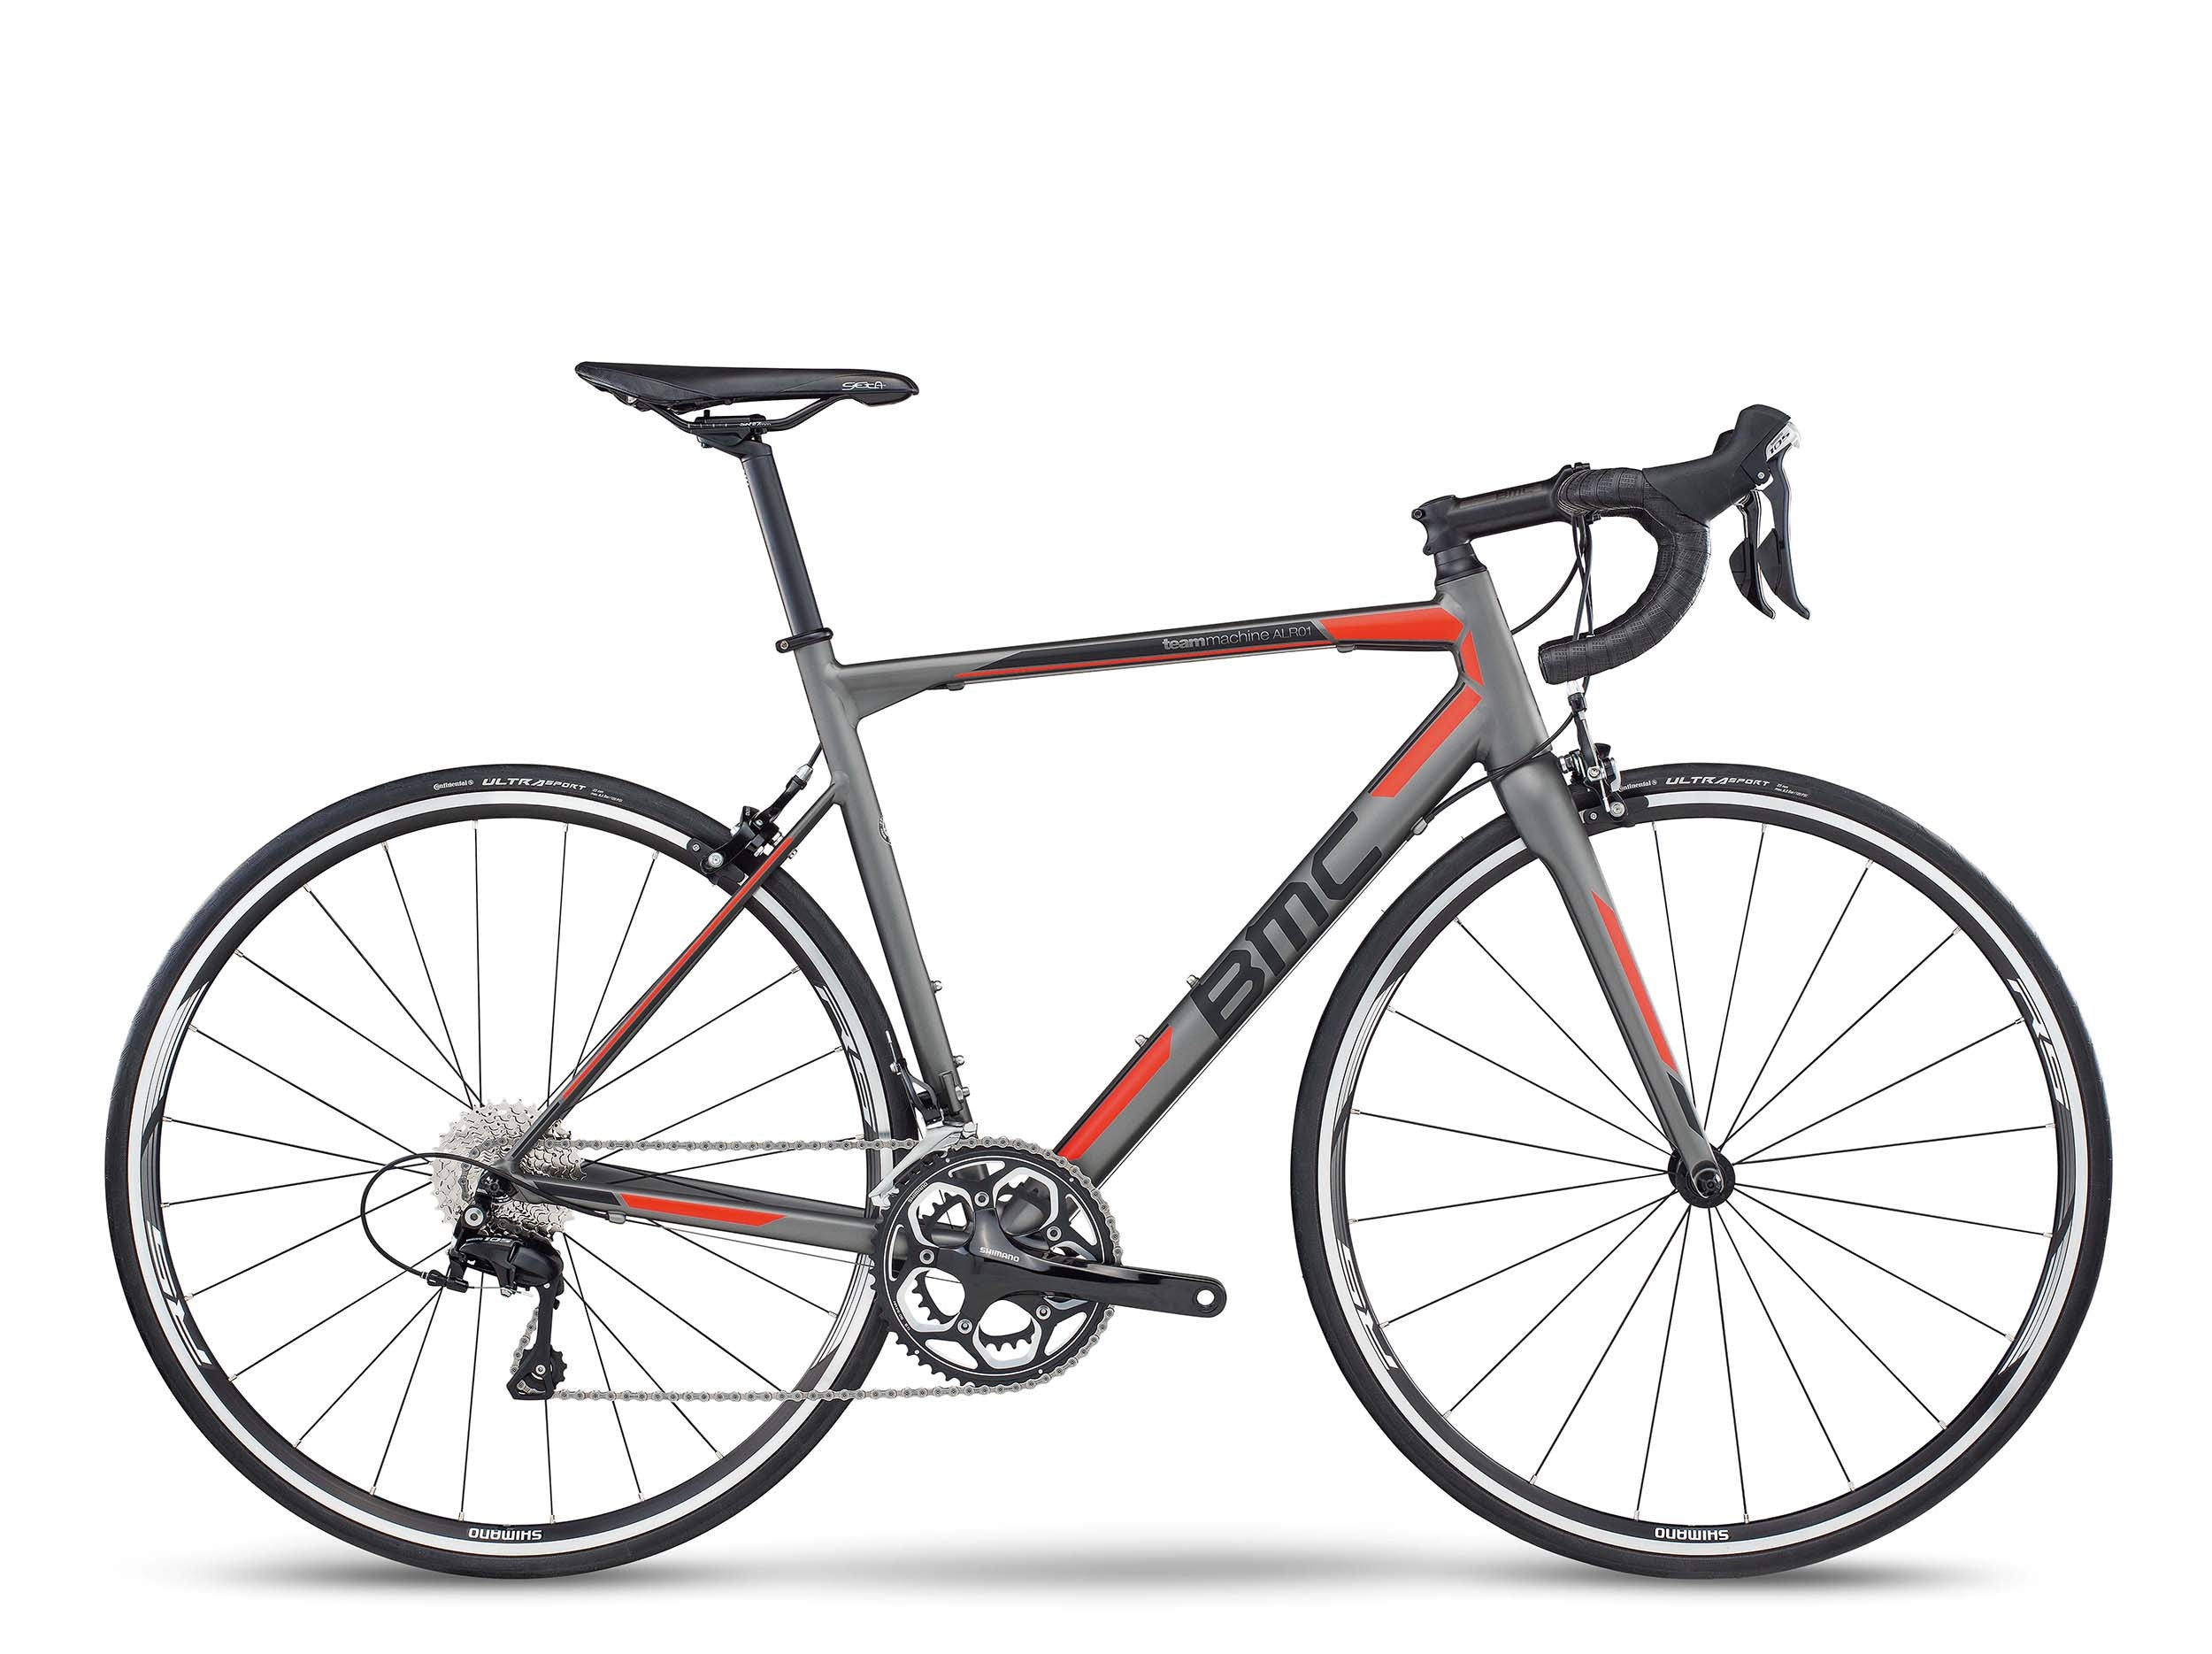 2017 BMC TeamMachine ALR01 105 5800 - Blaze - International Version